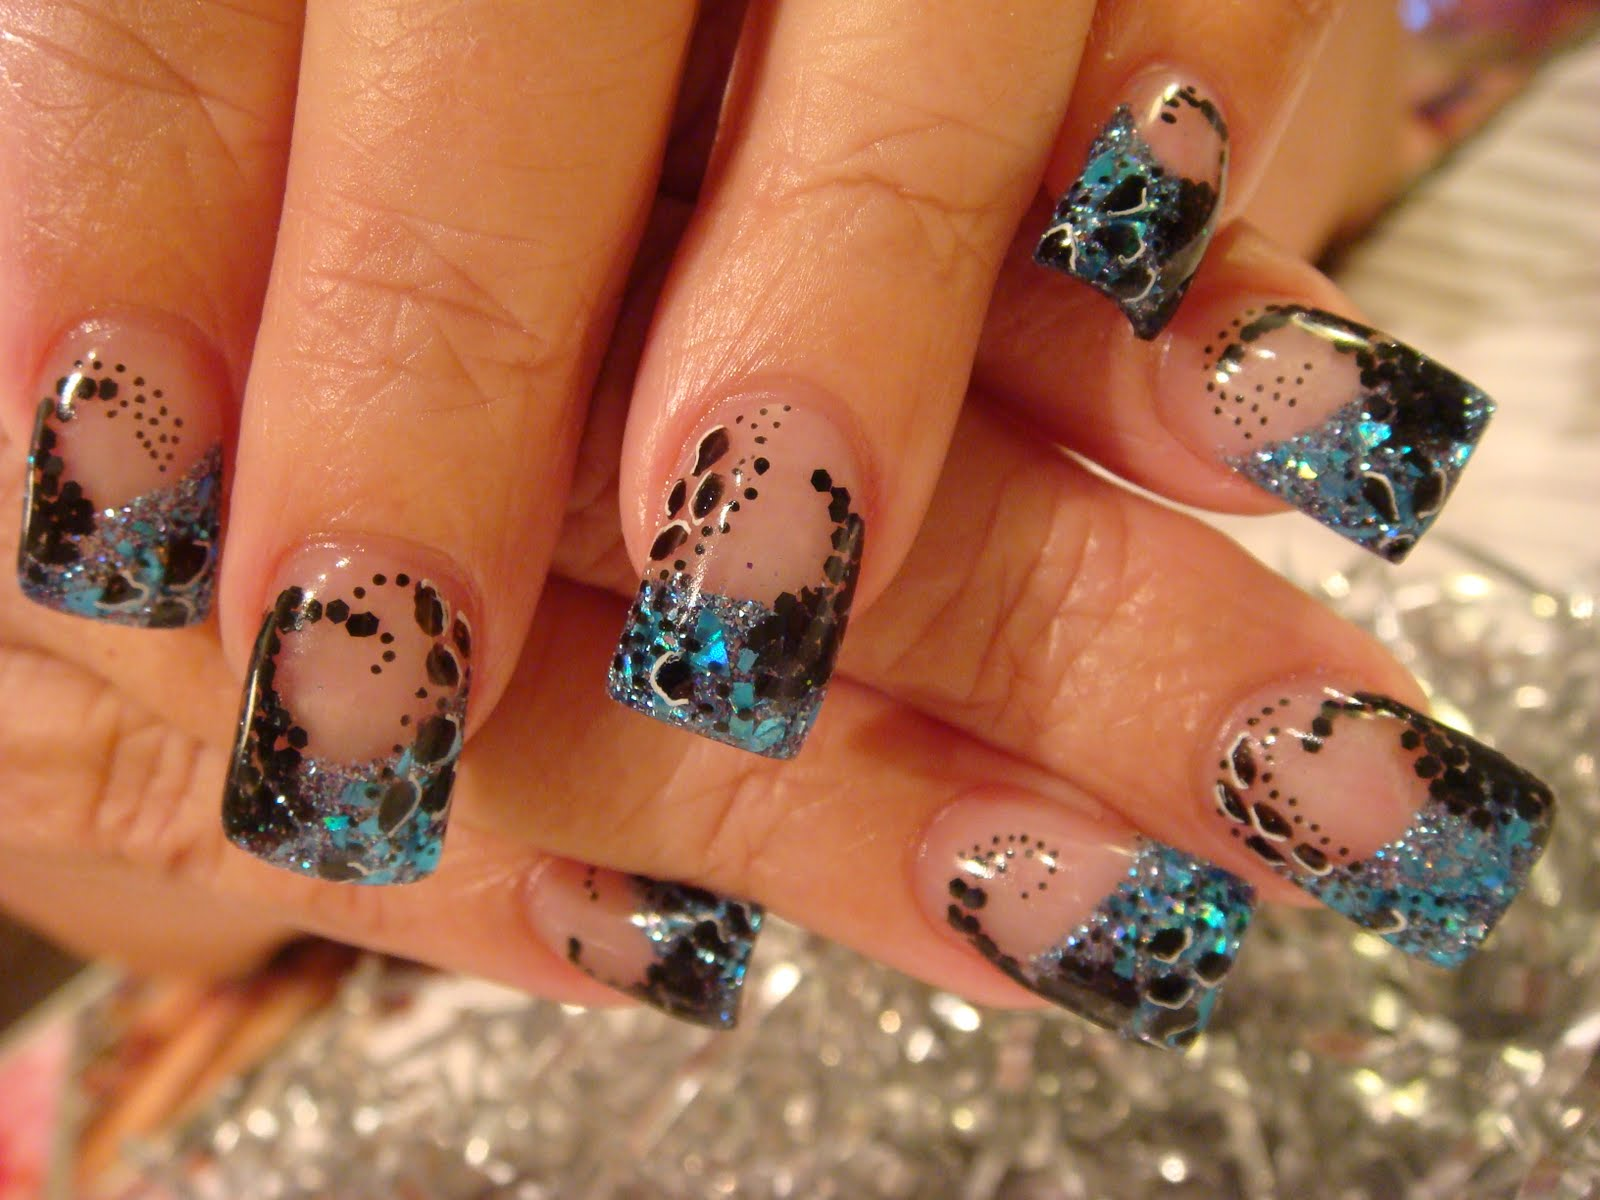 Fall Acrylic Nail Designs http://acrylic-nails.blogspot.com/2010/09/last-days-of-summer-nail-acrylic.html